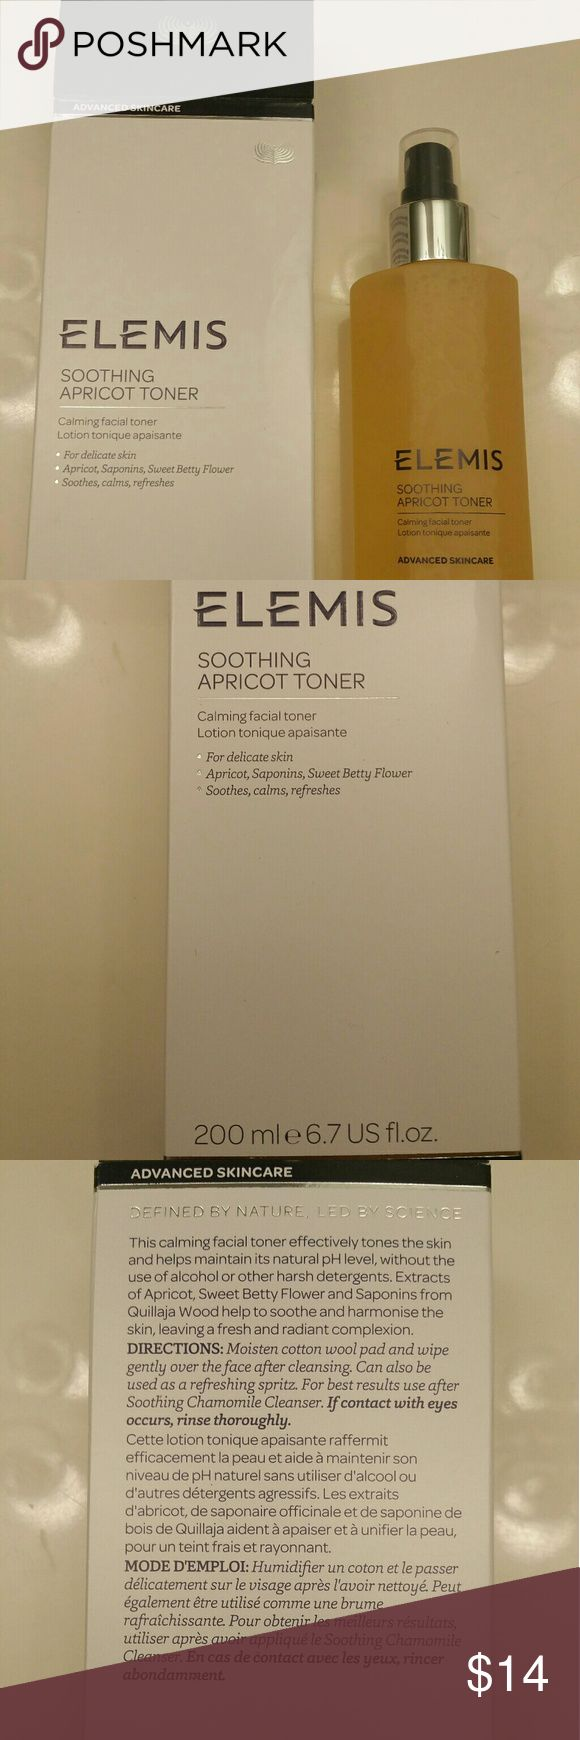 New never used elemis apricot toner Never used in orginal box apricot toner. Bought directly from a local spa. elemis Makeup